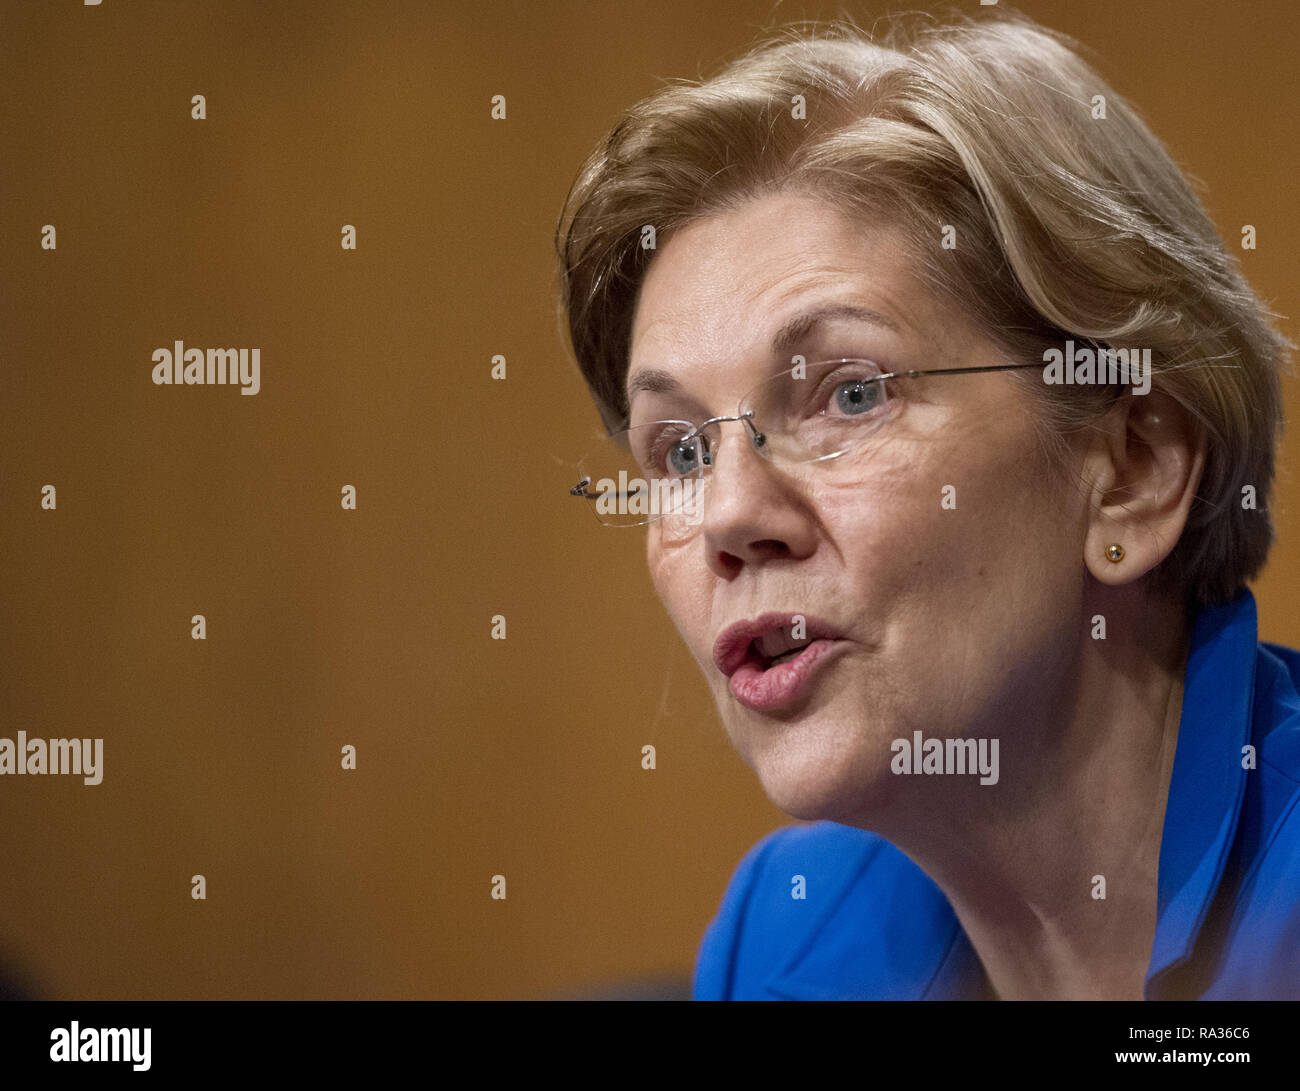 January 23, 2018 - Washington, District of Columbia, United States of America - United States Senator Elizabeth Warren (Democrat of Massachusetts) asks questions during testimony before the US Senate Committee on Banking, Housing, and Urban Affairs during the confirmation hearing for Jelena McWilliams, to be Chairperson and a Member of the Board of Directors of the Federal Deposit Insurance Corporation; Dr. Marvin Goodfriend, to be a Member of the Board of Governors of the Federal Reserve System; and Mr. Thomas E. Workman, to be a Member of the Financial Stability Oversight Council, on Capitol Stock Photo